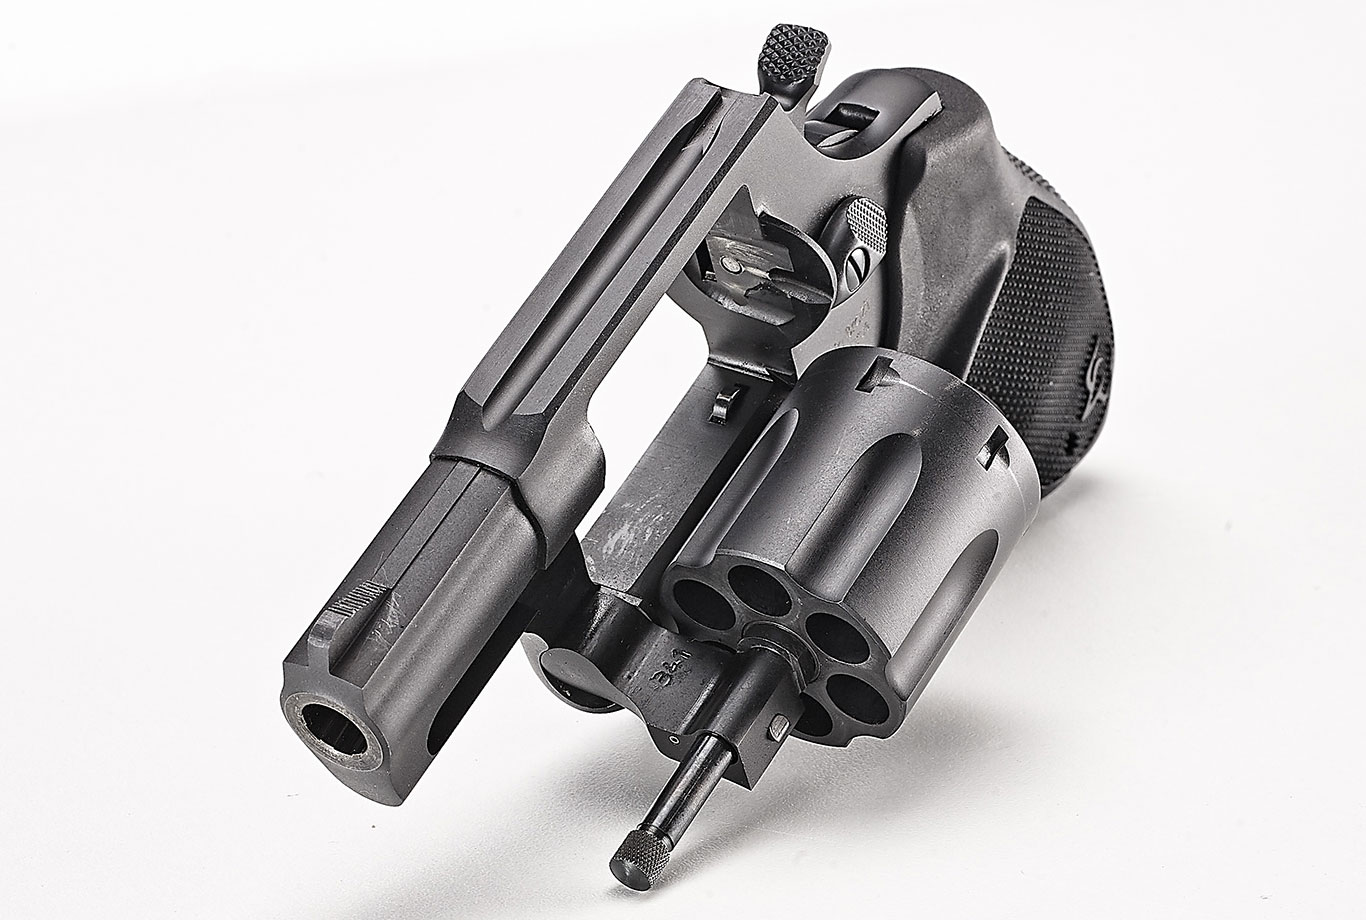 The UL 856, by Taurus, is a six-shot, 2-inch barreled .38 Special that is just over 6.5 inches long and 1.41 inches wide.